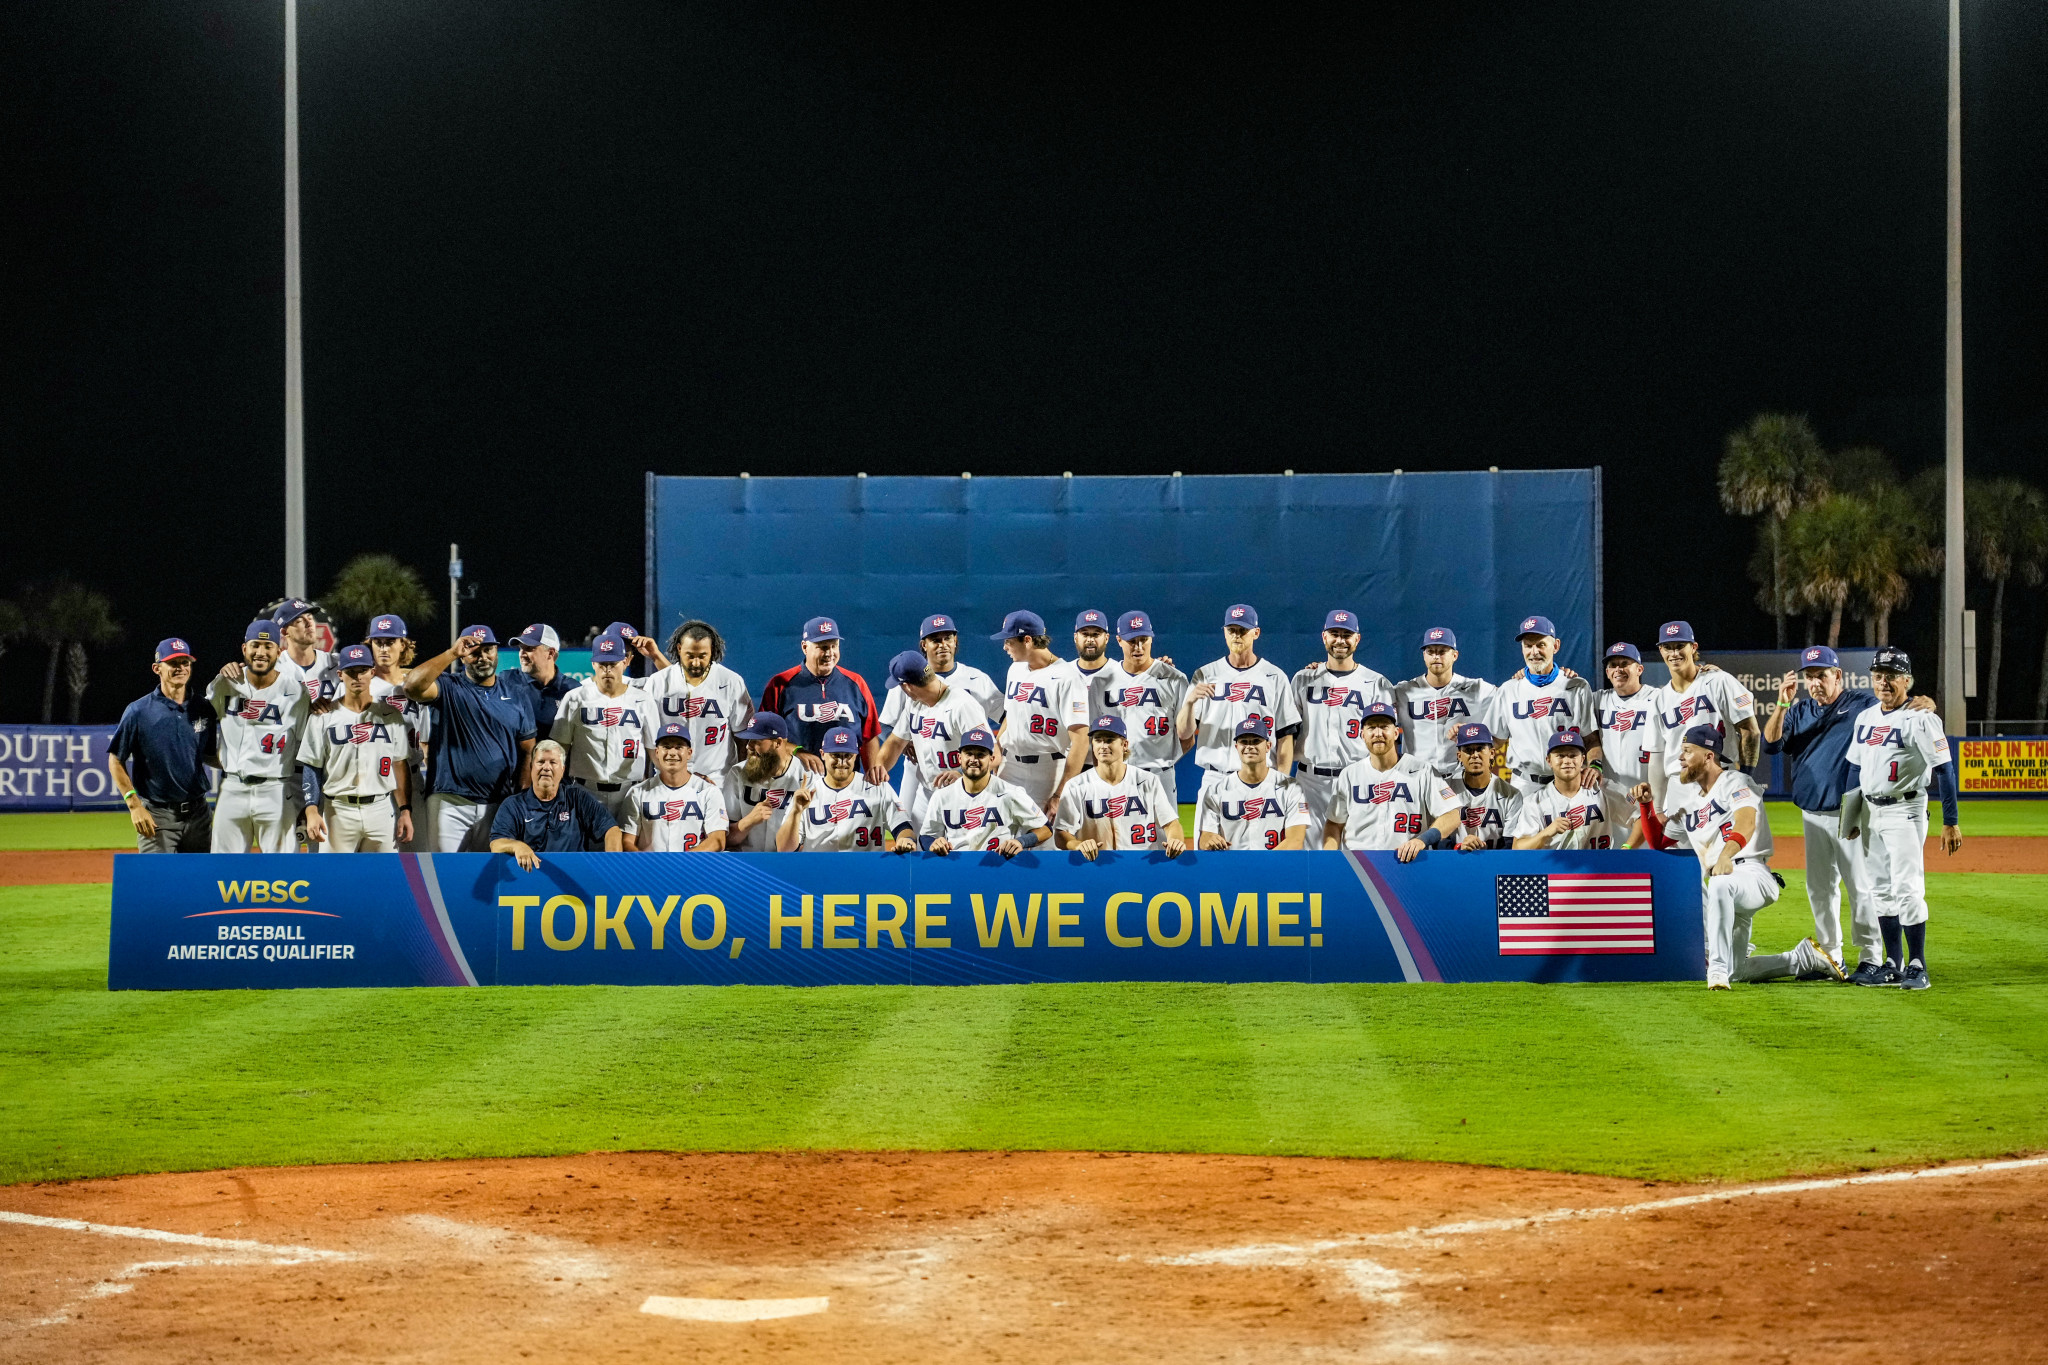 The United States won the event on home turf to qualify for Tokyo 2020 ©Getty Images